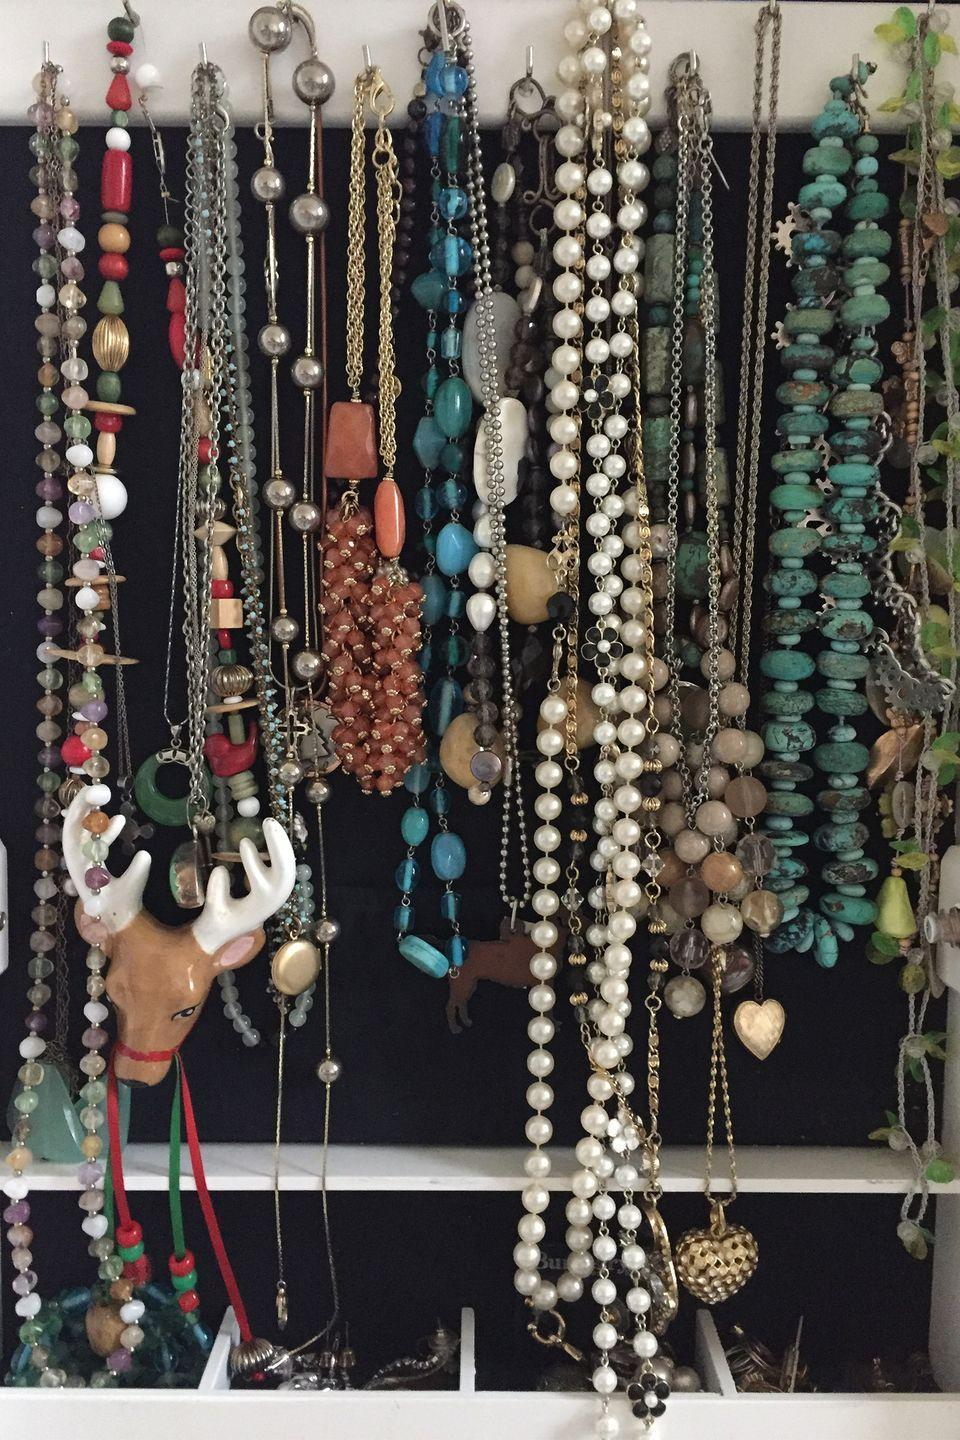 """<p>Hang a flat <a href=""""https://www.womansday.com/style/fashion/g2304/mothers-day-jewelry/"""" rel=""""nofollow noopener"""" target=""""_blank"""" data-ylk=""""slk:jewelry"""" class=""""link rapid-noclick-resp"""">jewelry</a> organizer with transparent pockets inside your closet door.</p><p><strong><a class=""""link rapid-noclick-resp"""" href=""""https://www.amazon.com/Homeneeds-Hanging-Jewelry-Organizer-Make-Up/dp/B071ZBLTYW?tag=syn-yahoo-20&ascsubtag=%5Bartid%7C10070.g.3310%5Bsrc%7Cyahoo-us"""" rel=""""nofollow noopener"""" target=""""_blank"""" data-ylk=""""slk:SHOP JEWELRY ORGANIZERS"""">SHOP JEWELRY ORGANIZERS</a></strong></p>"""